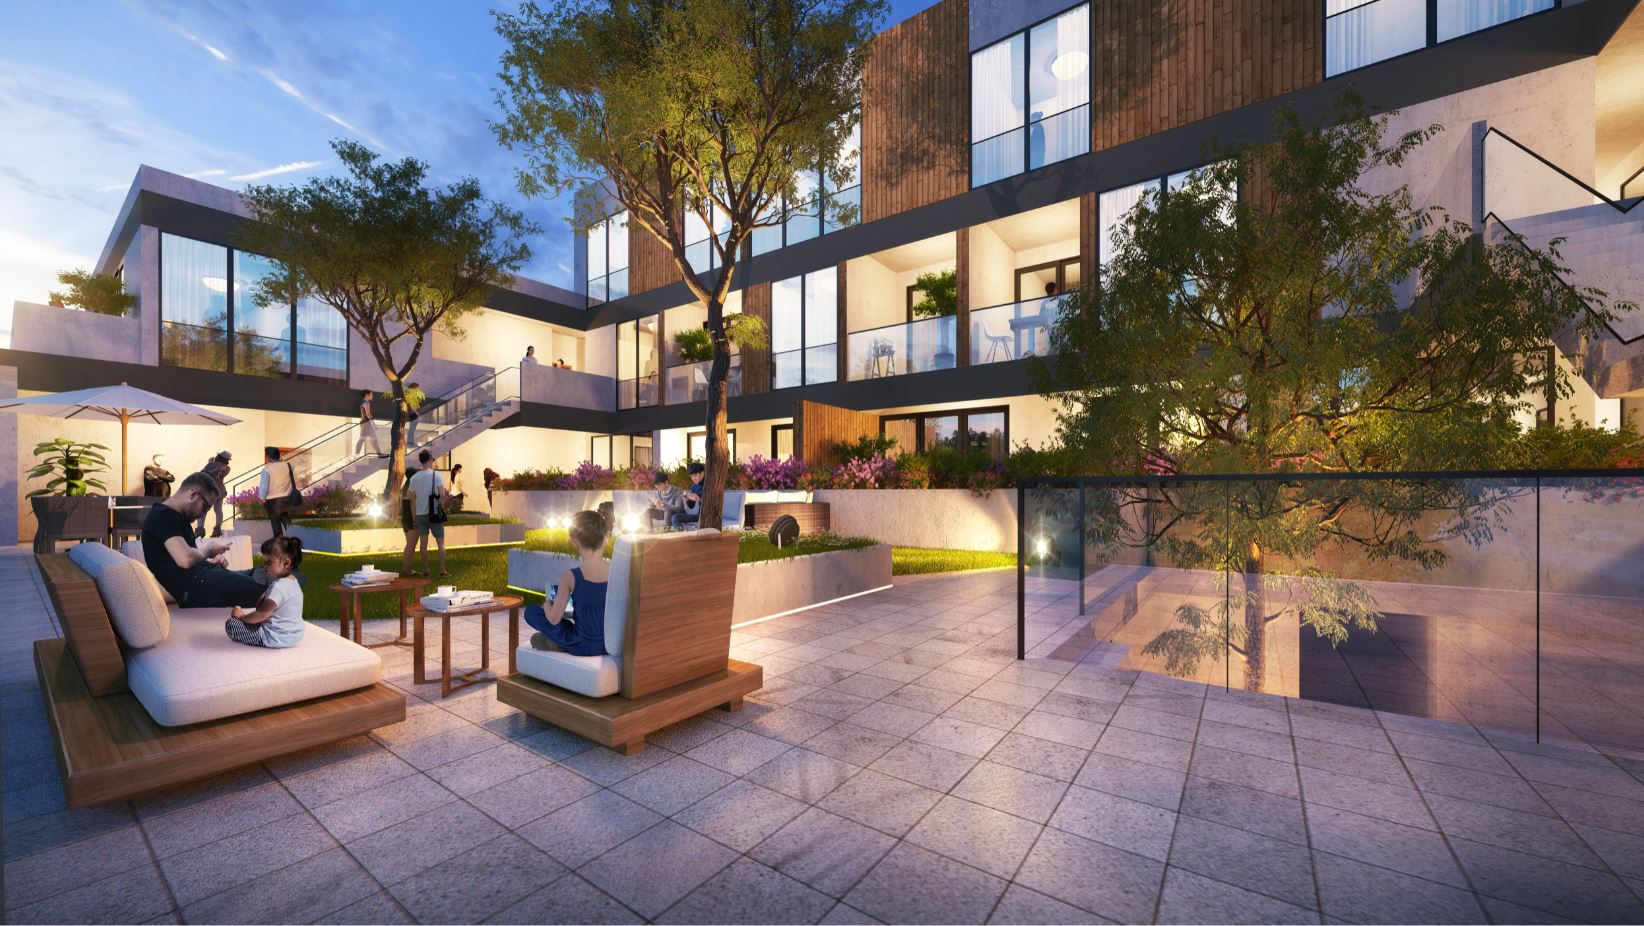 Courtyard_low res